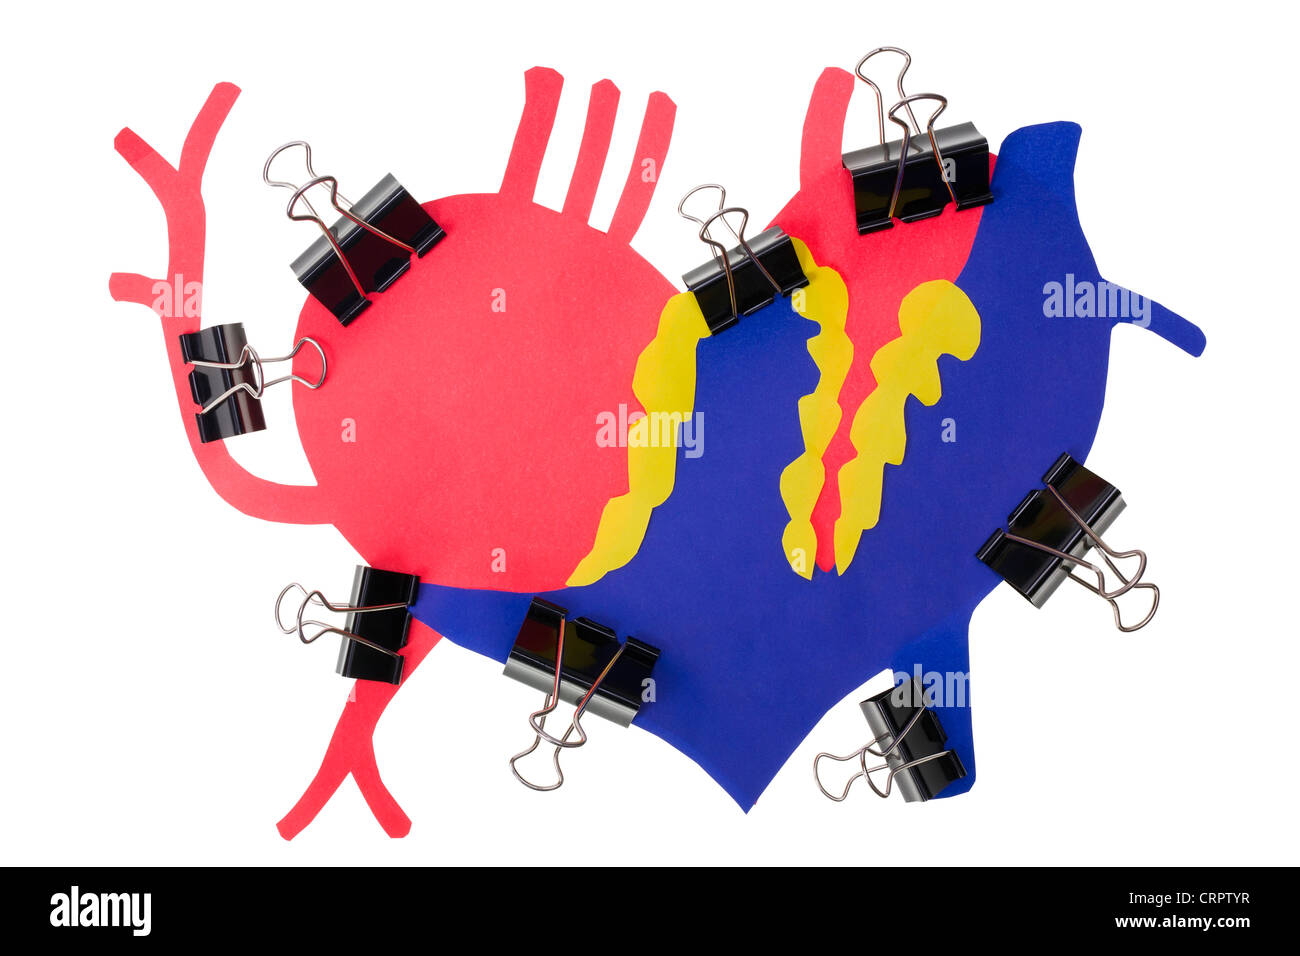 Myocardial infarction concept of the human heart. A heart attack. Heart from colored paper with a rough surface is compressed st Stock Photo